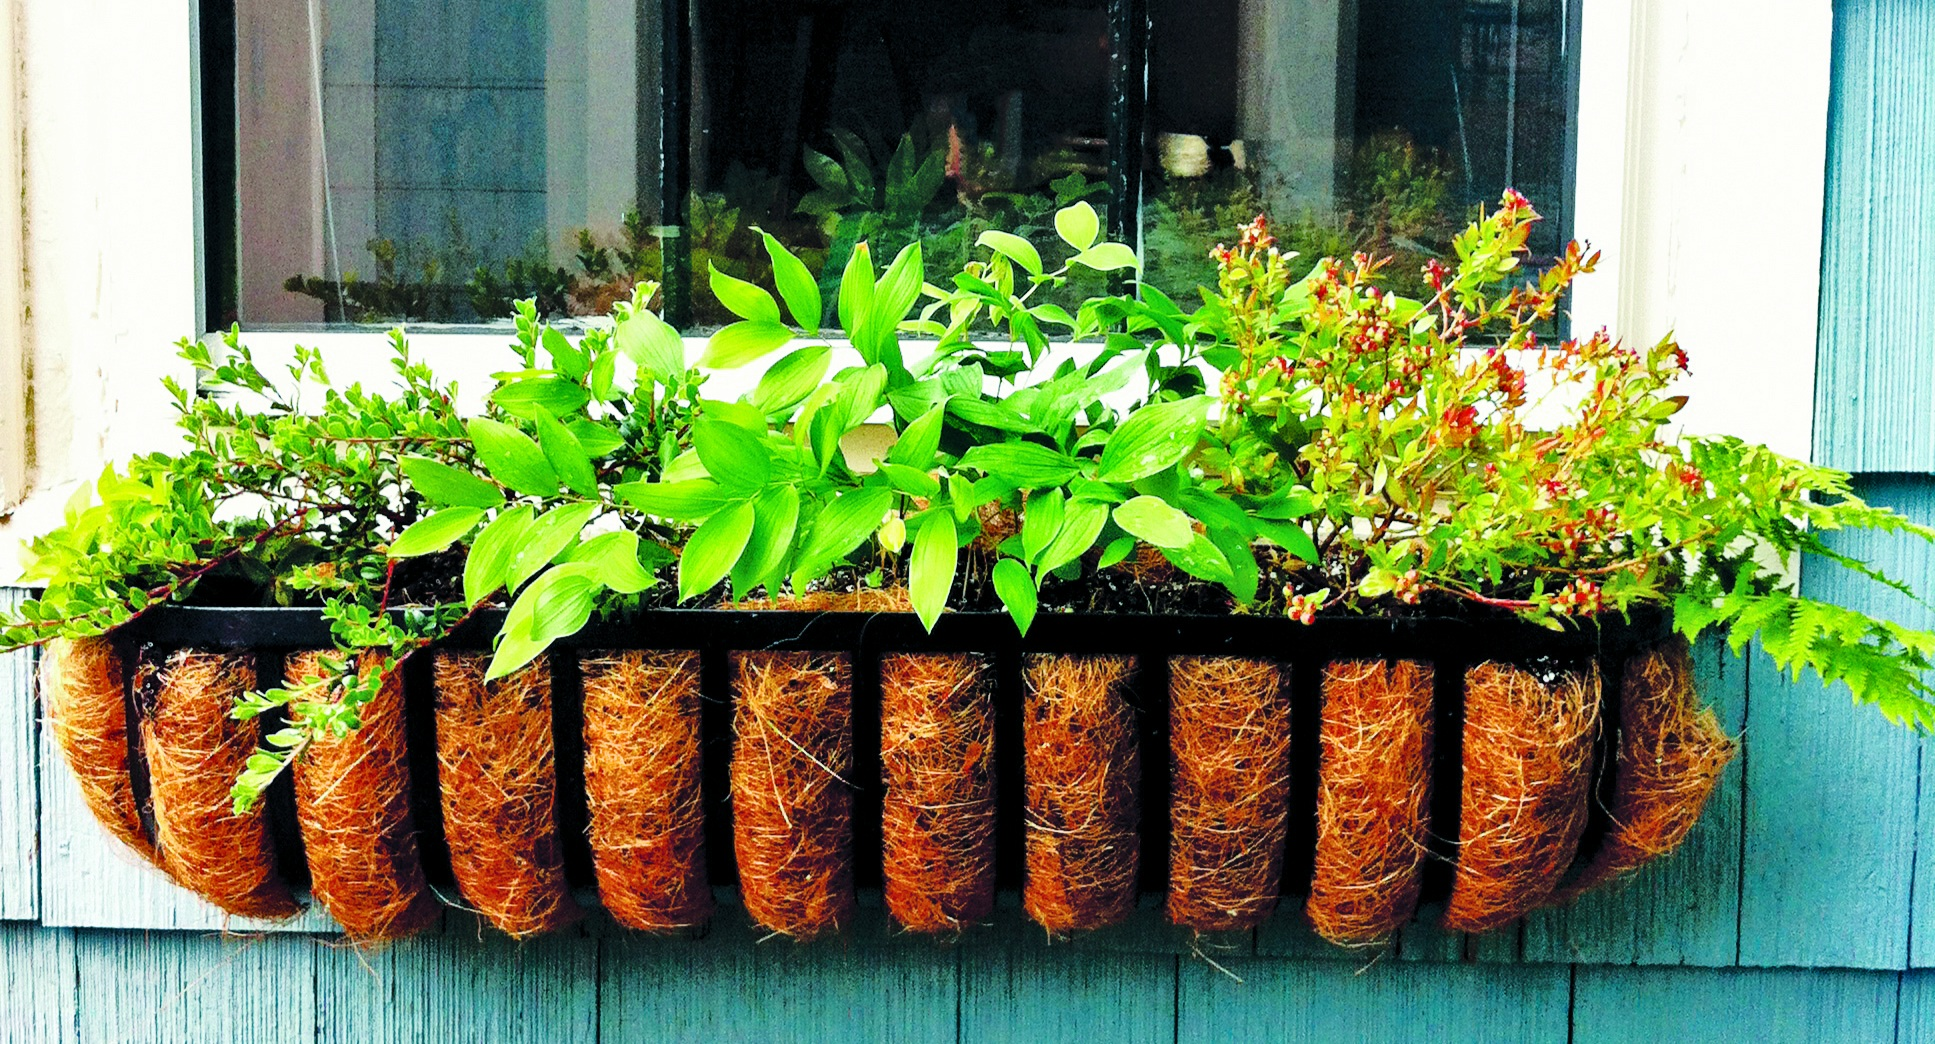 Apartment and condo dwellers can plant natives in window boxes and pots. This window box has bearberry, lowbush blueberry, and bellwort.